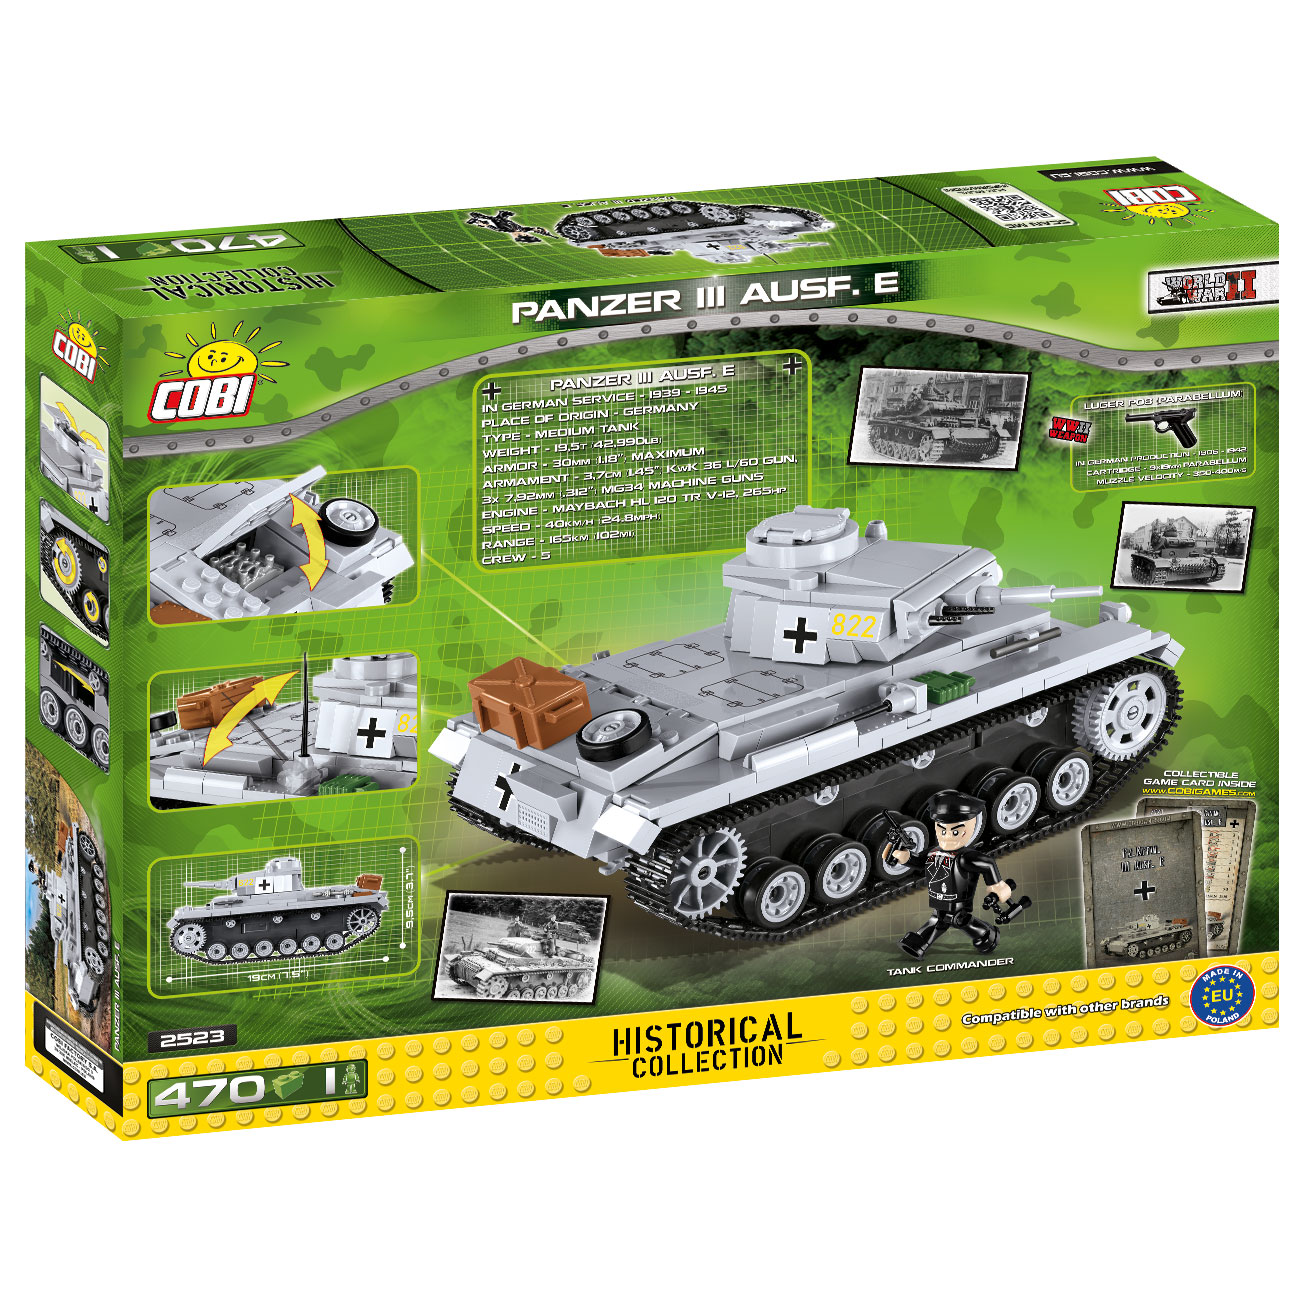 Cobi Historical Collection Bausatz Panzer III Ausf. E 470 Teile 2523 3